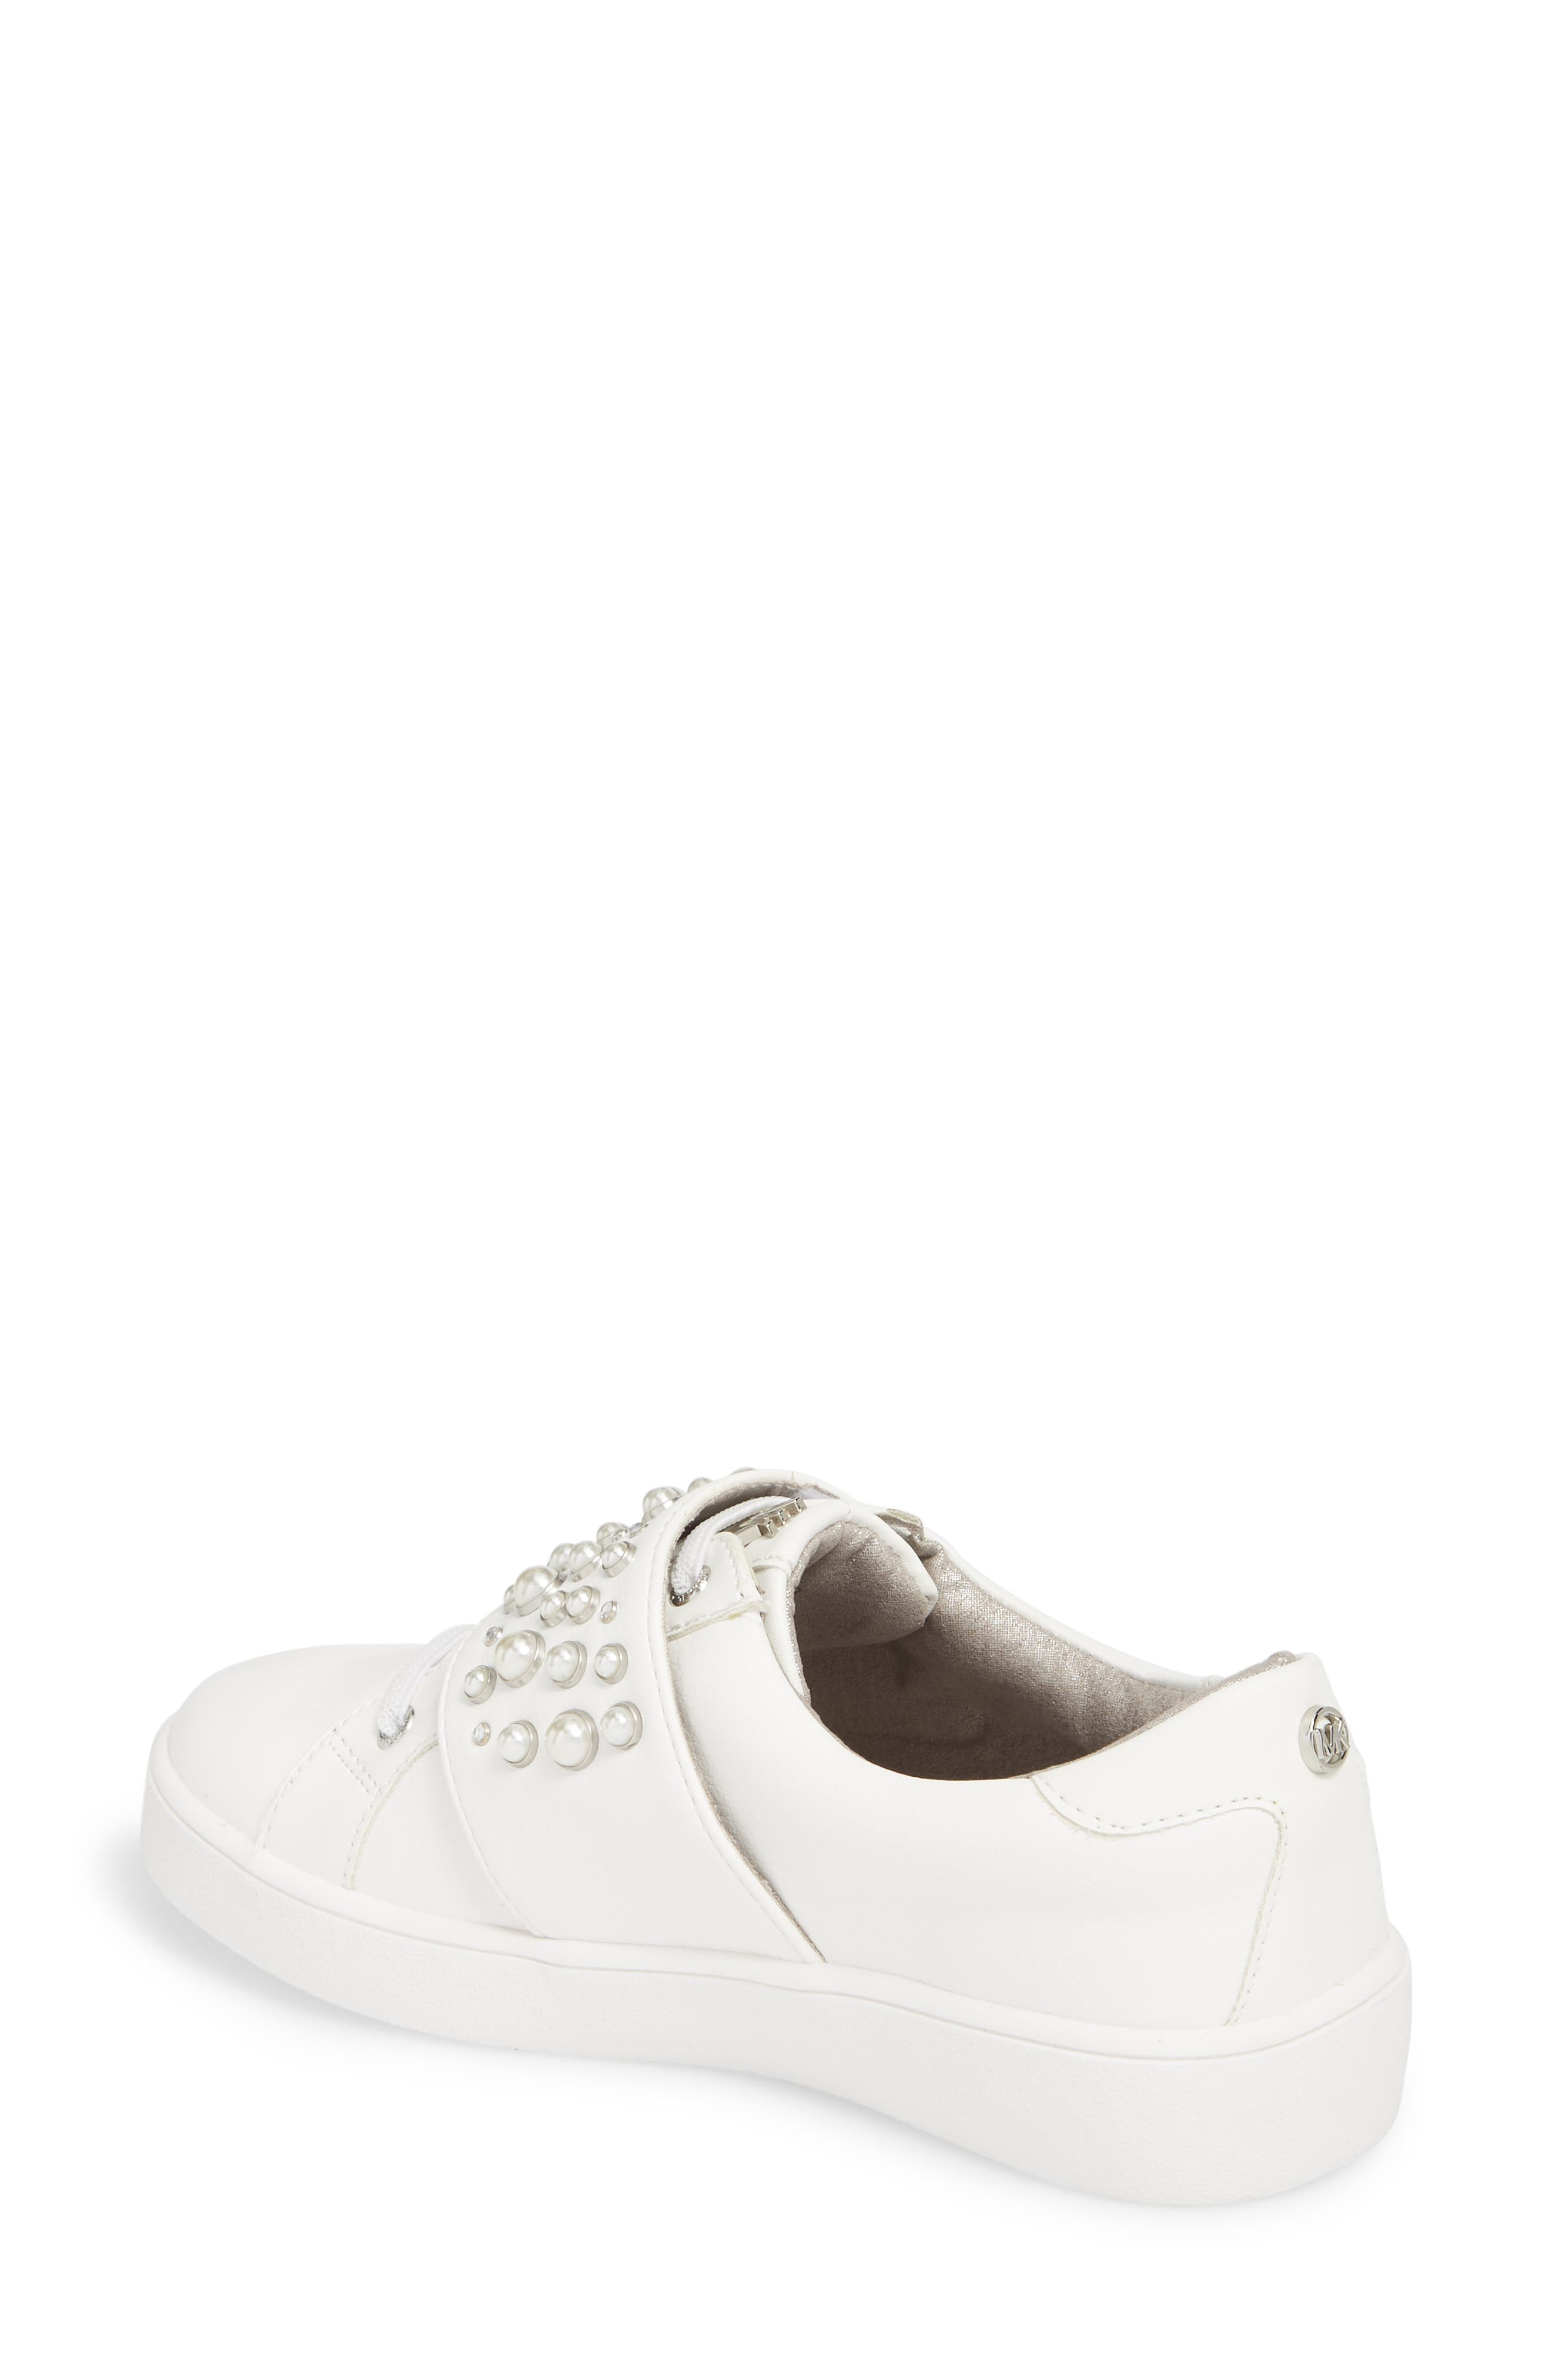 Ivy Embellished Metallic Sneaker,                             Alternate thumbnail 2, color,                             100